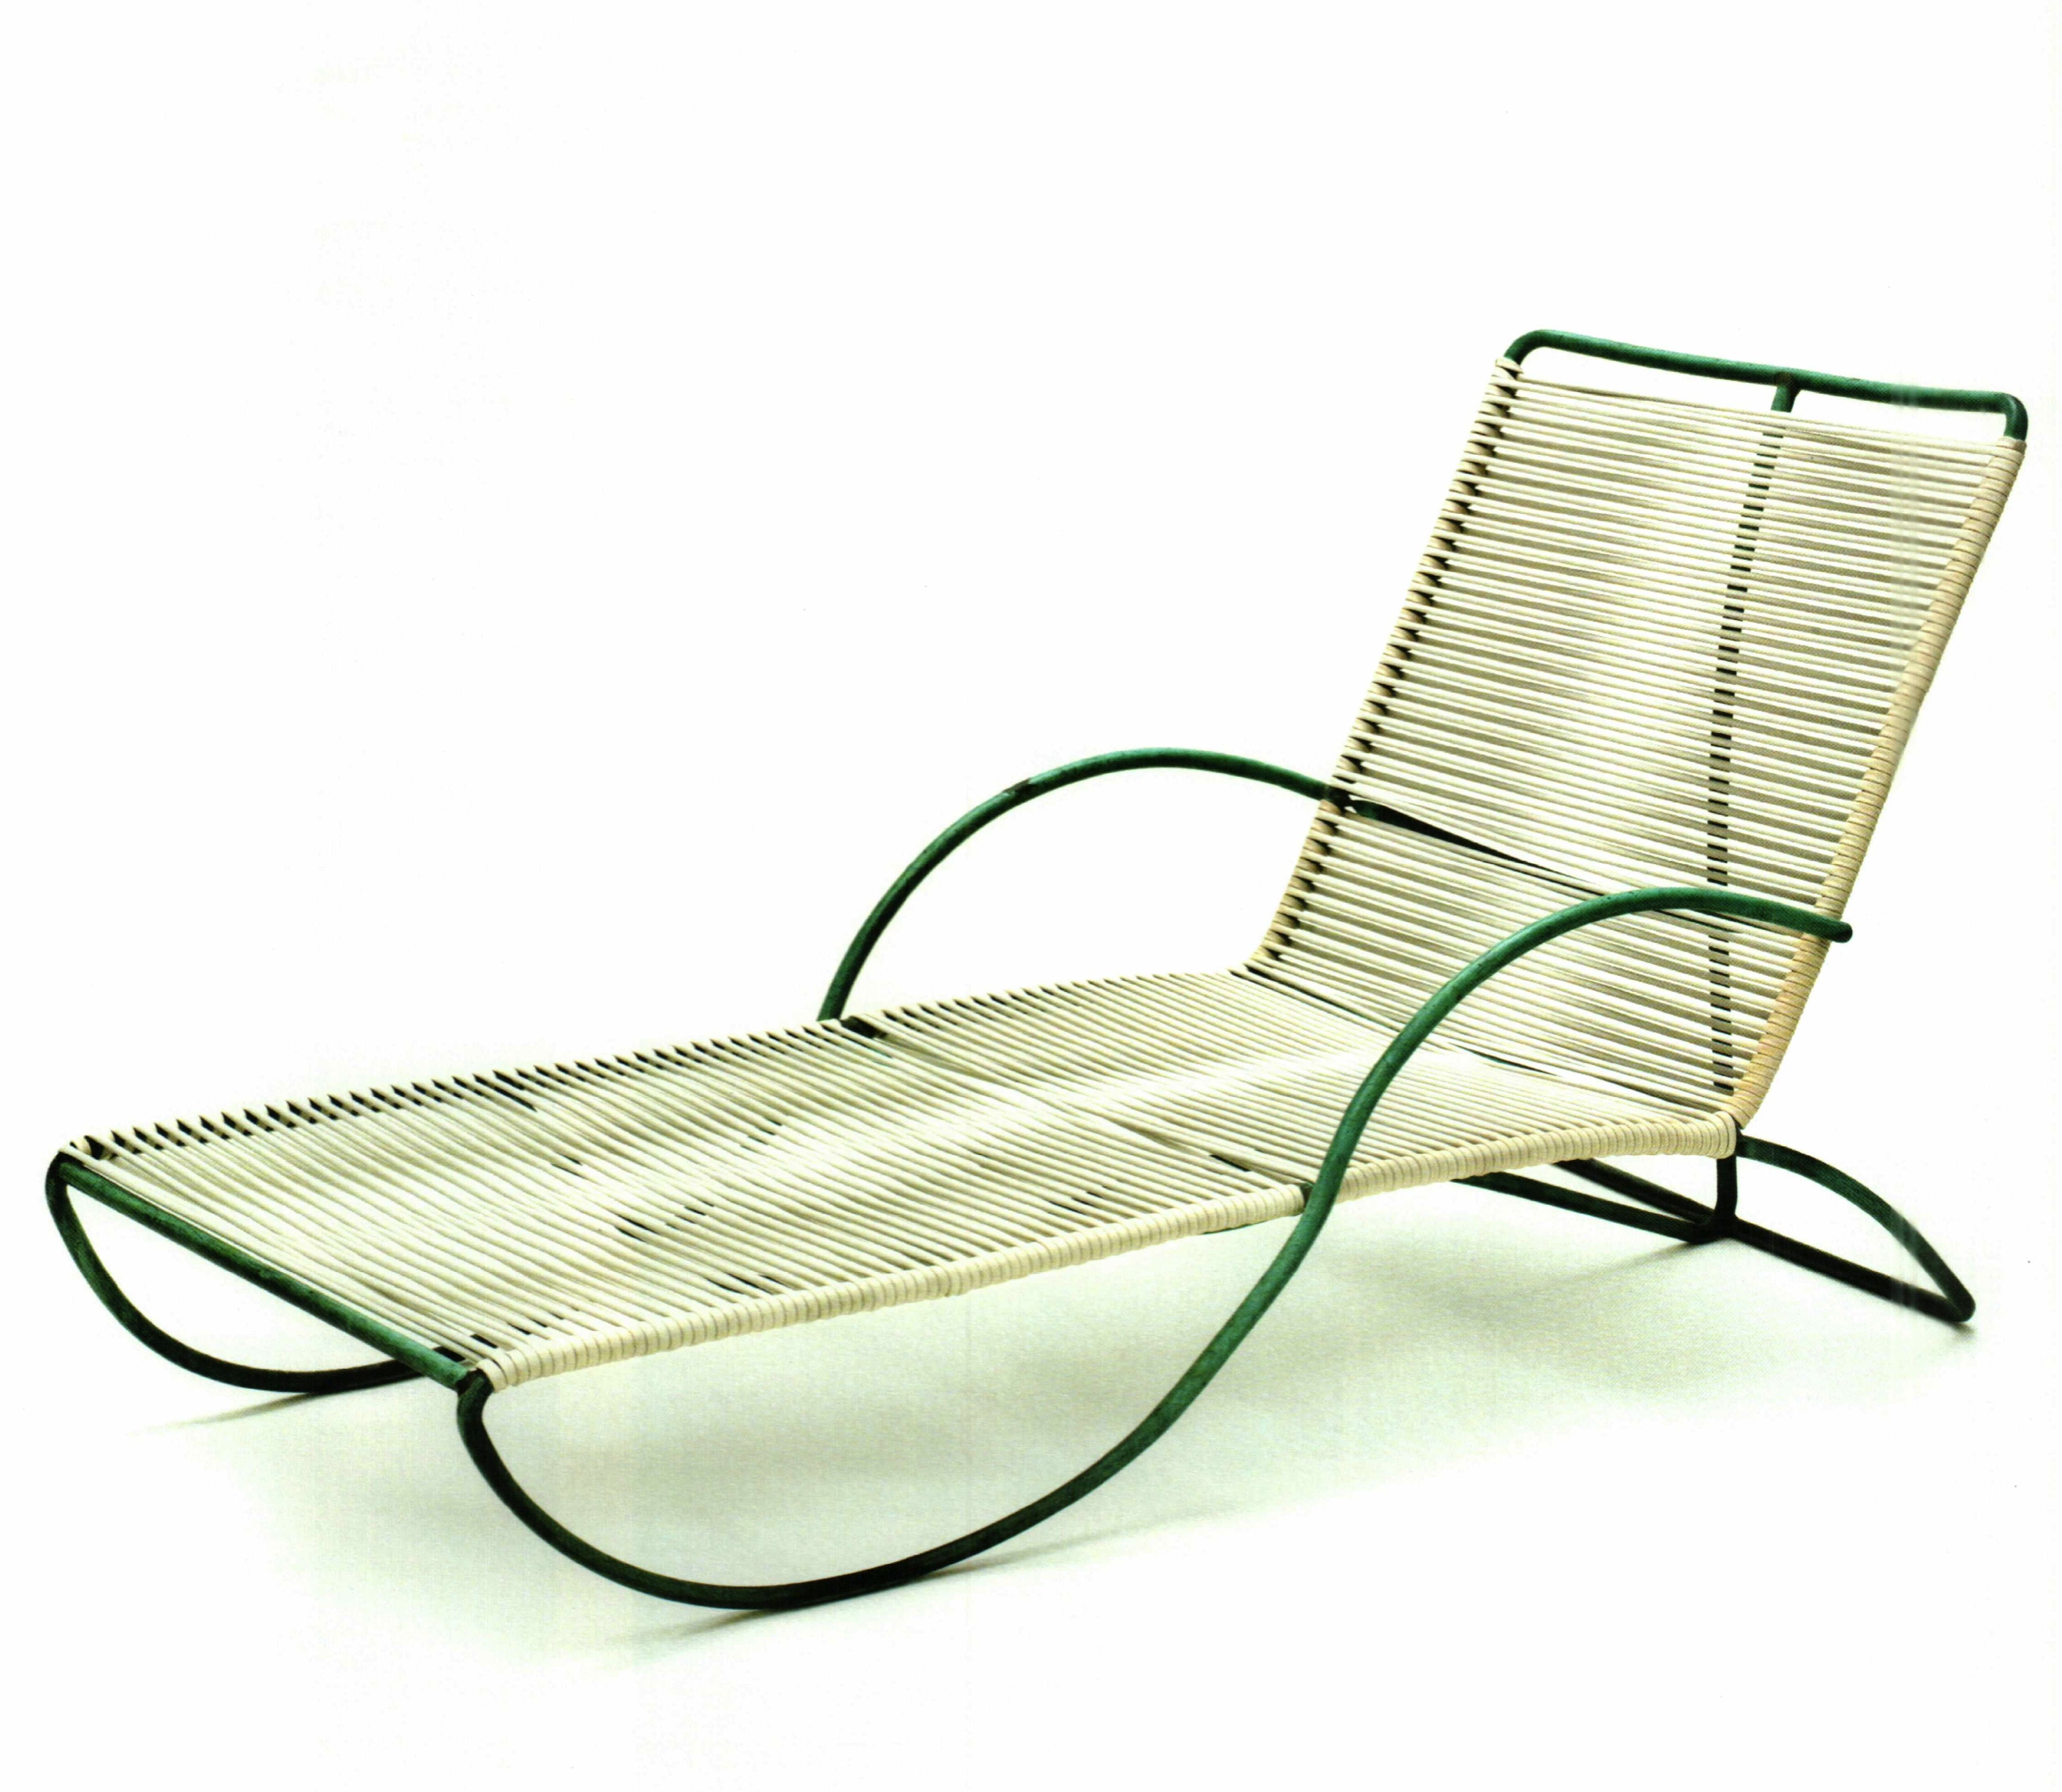 Walter Lamb For Brown Jordan Company Chaise C 1954 While Living In Hawaii The 1940s First Created Patio Furniture With Bronze He Allegedly